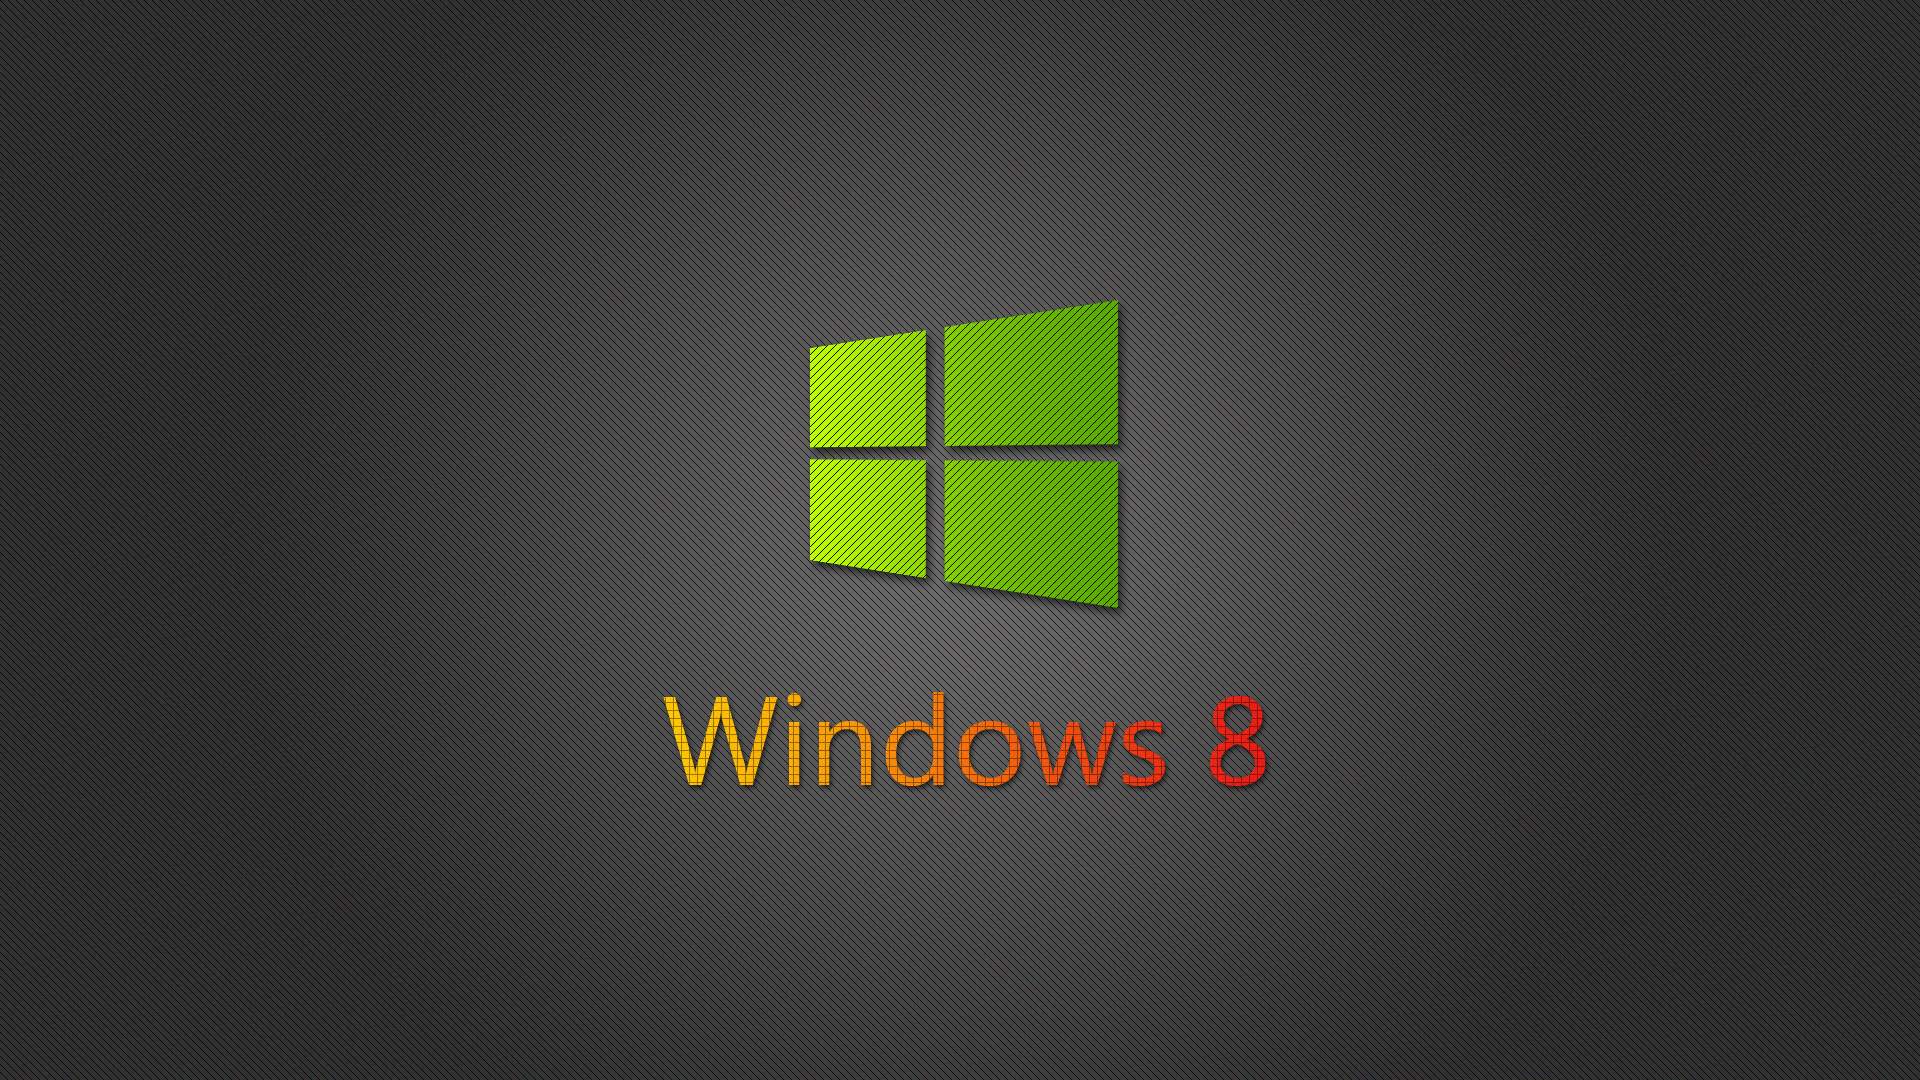 download these 44 hd windows 8 wallpaper images